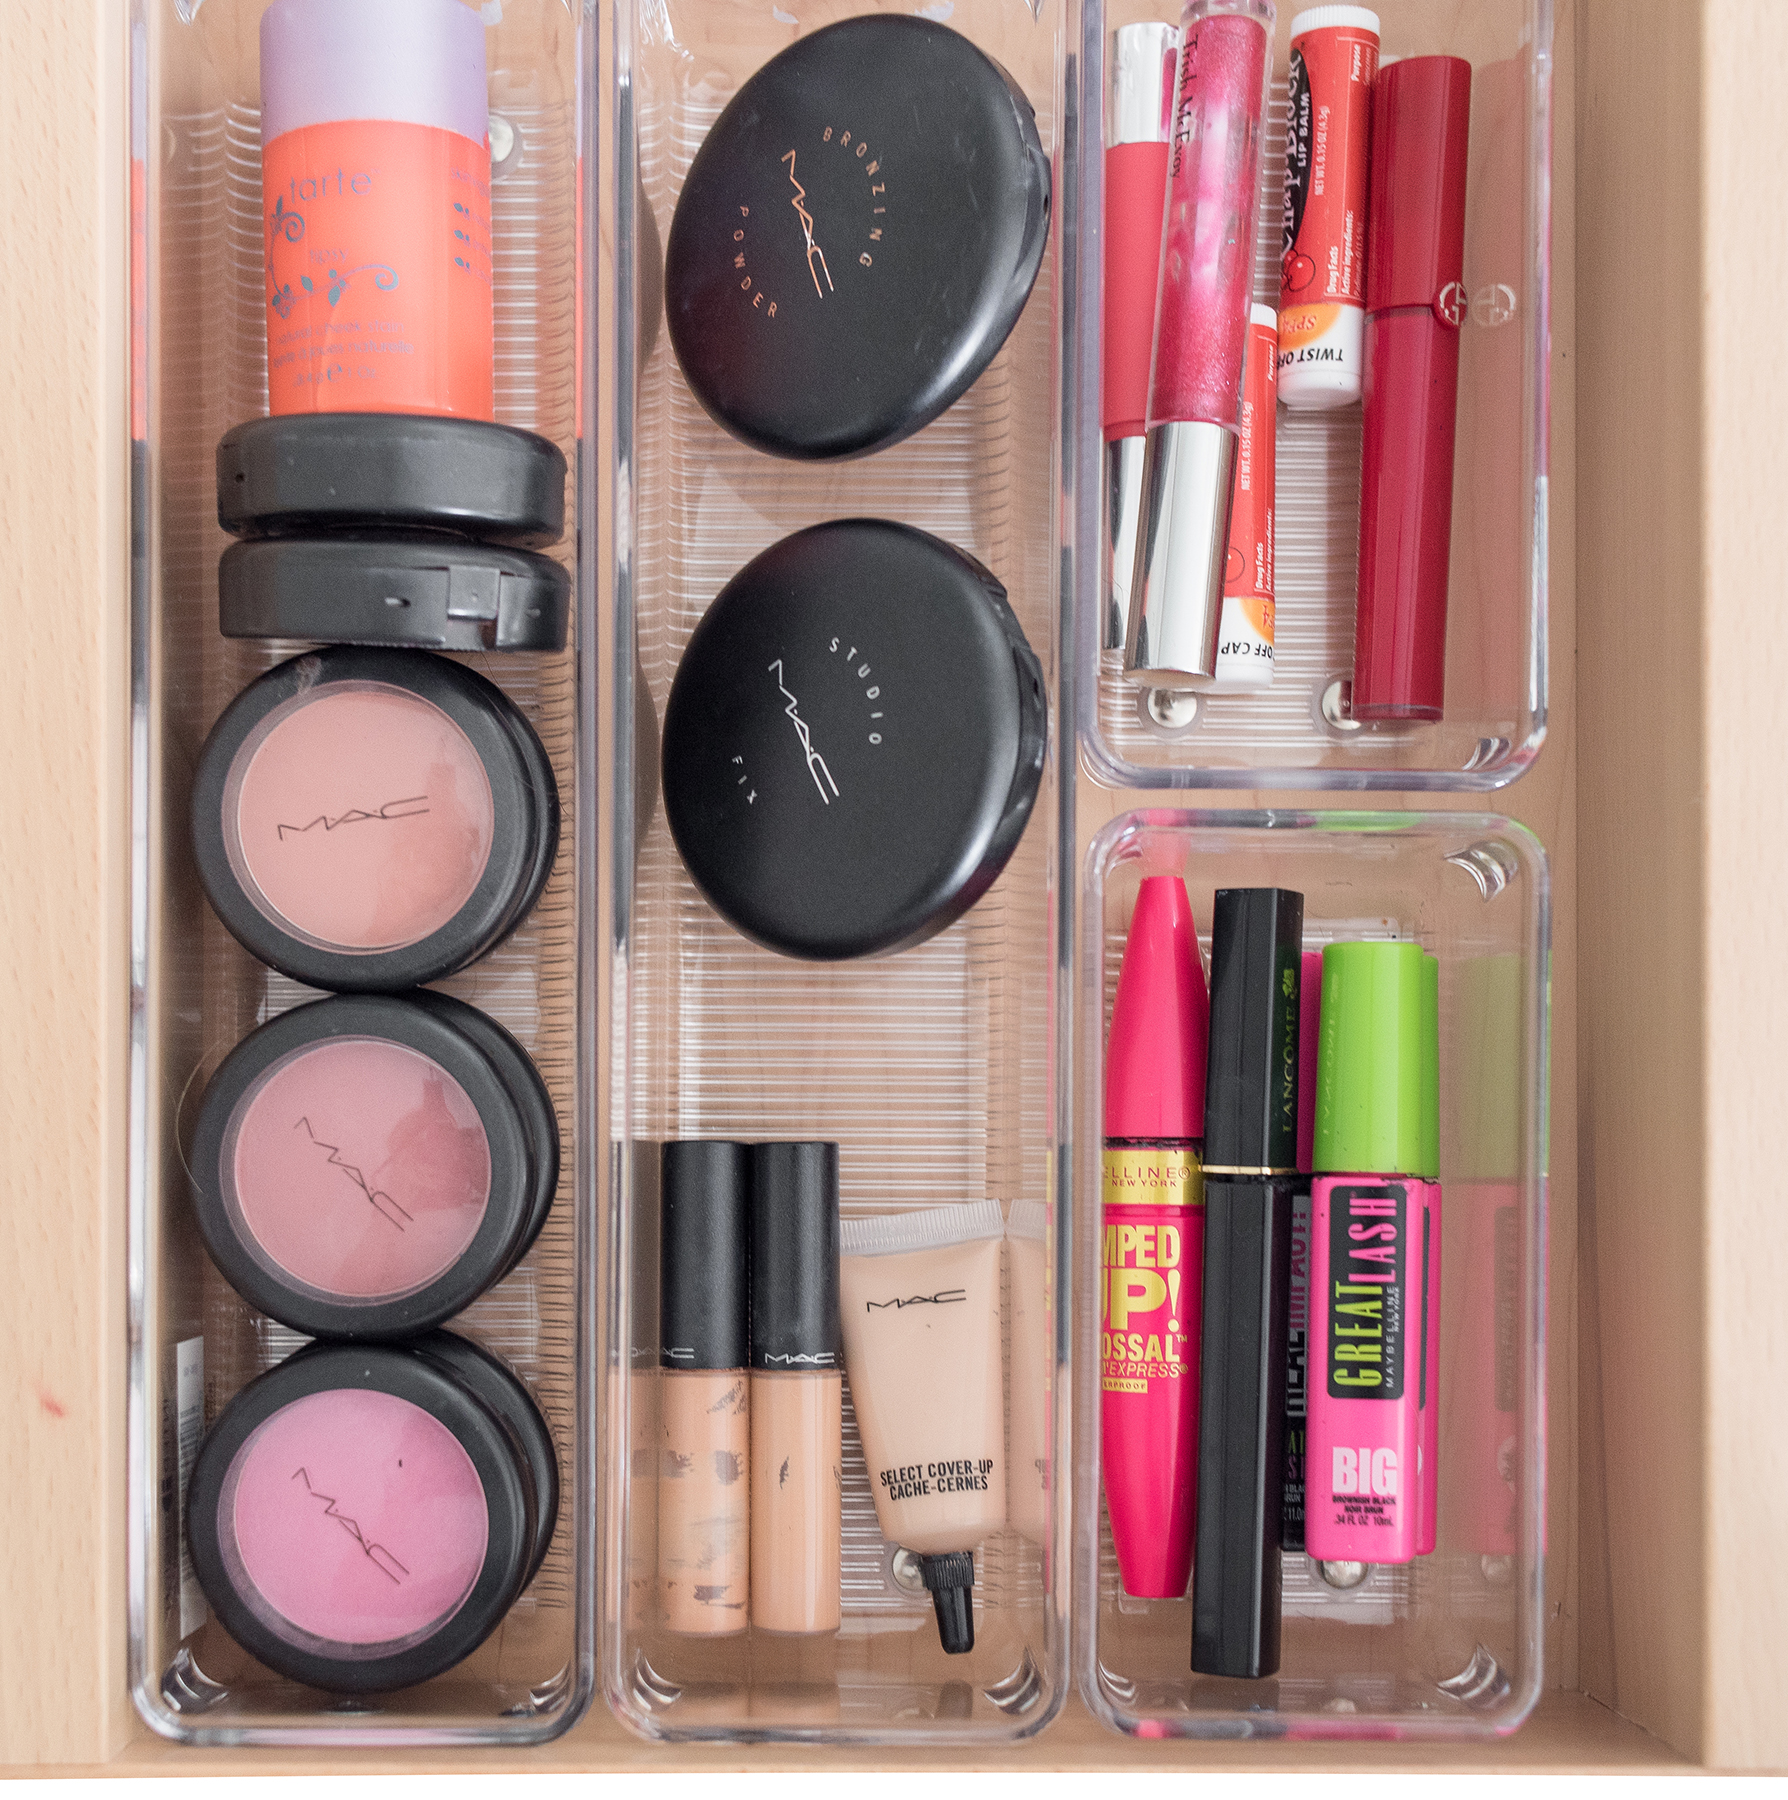 Makeup organized in tray